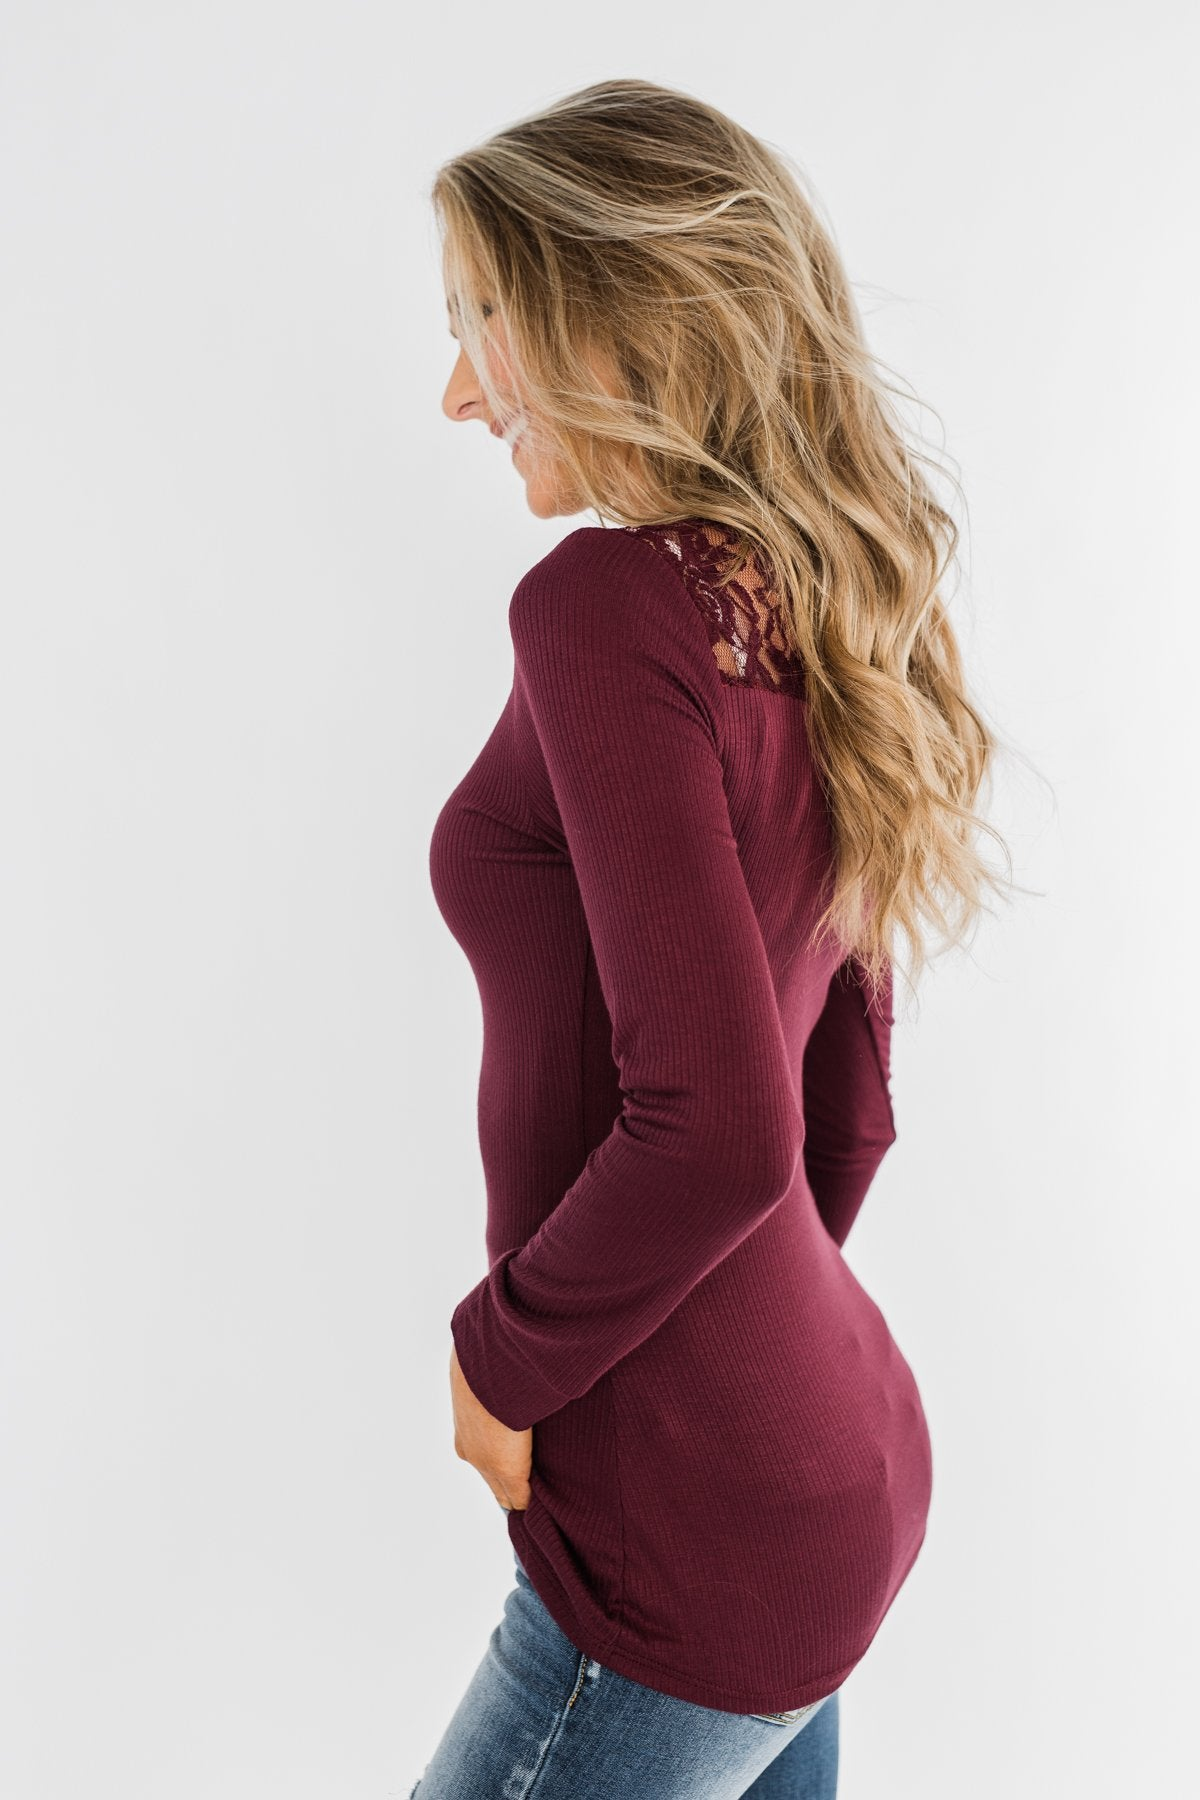 Lace Back 5-Button Henley Top- Burgundy